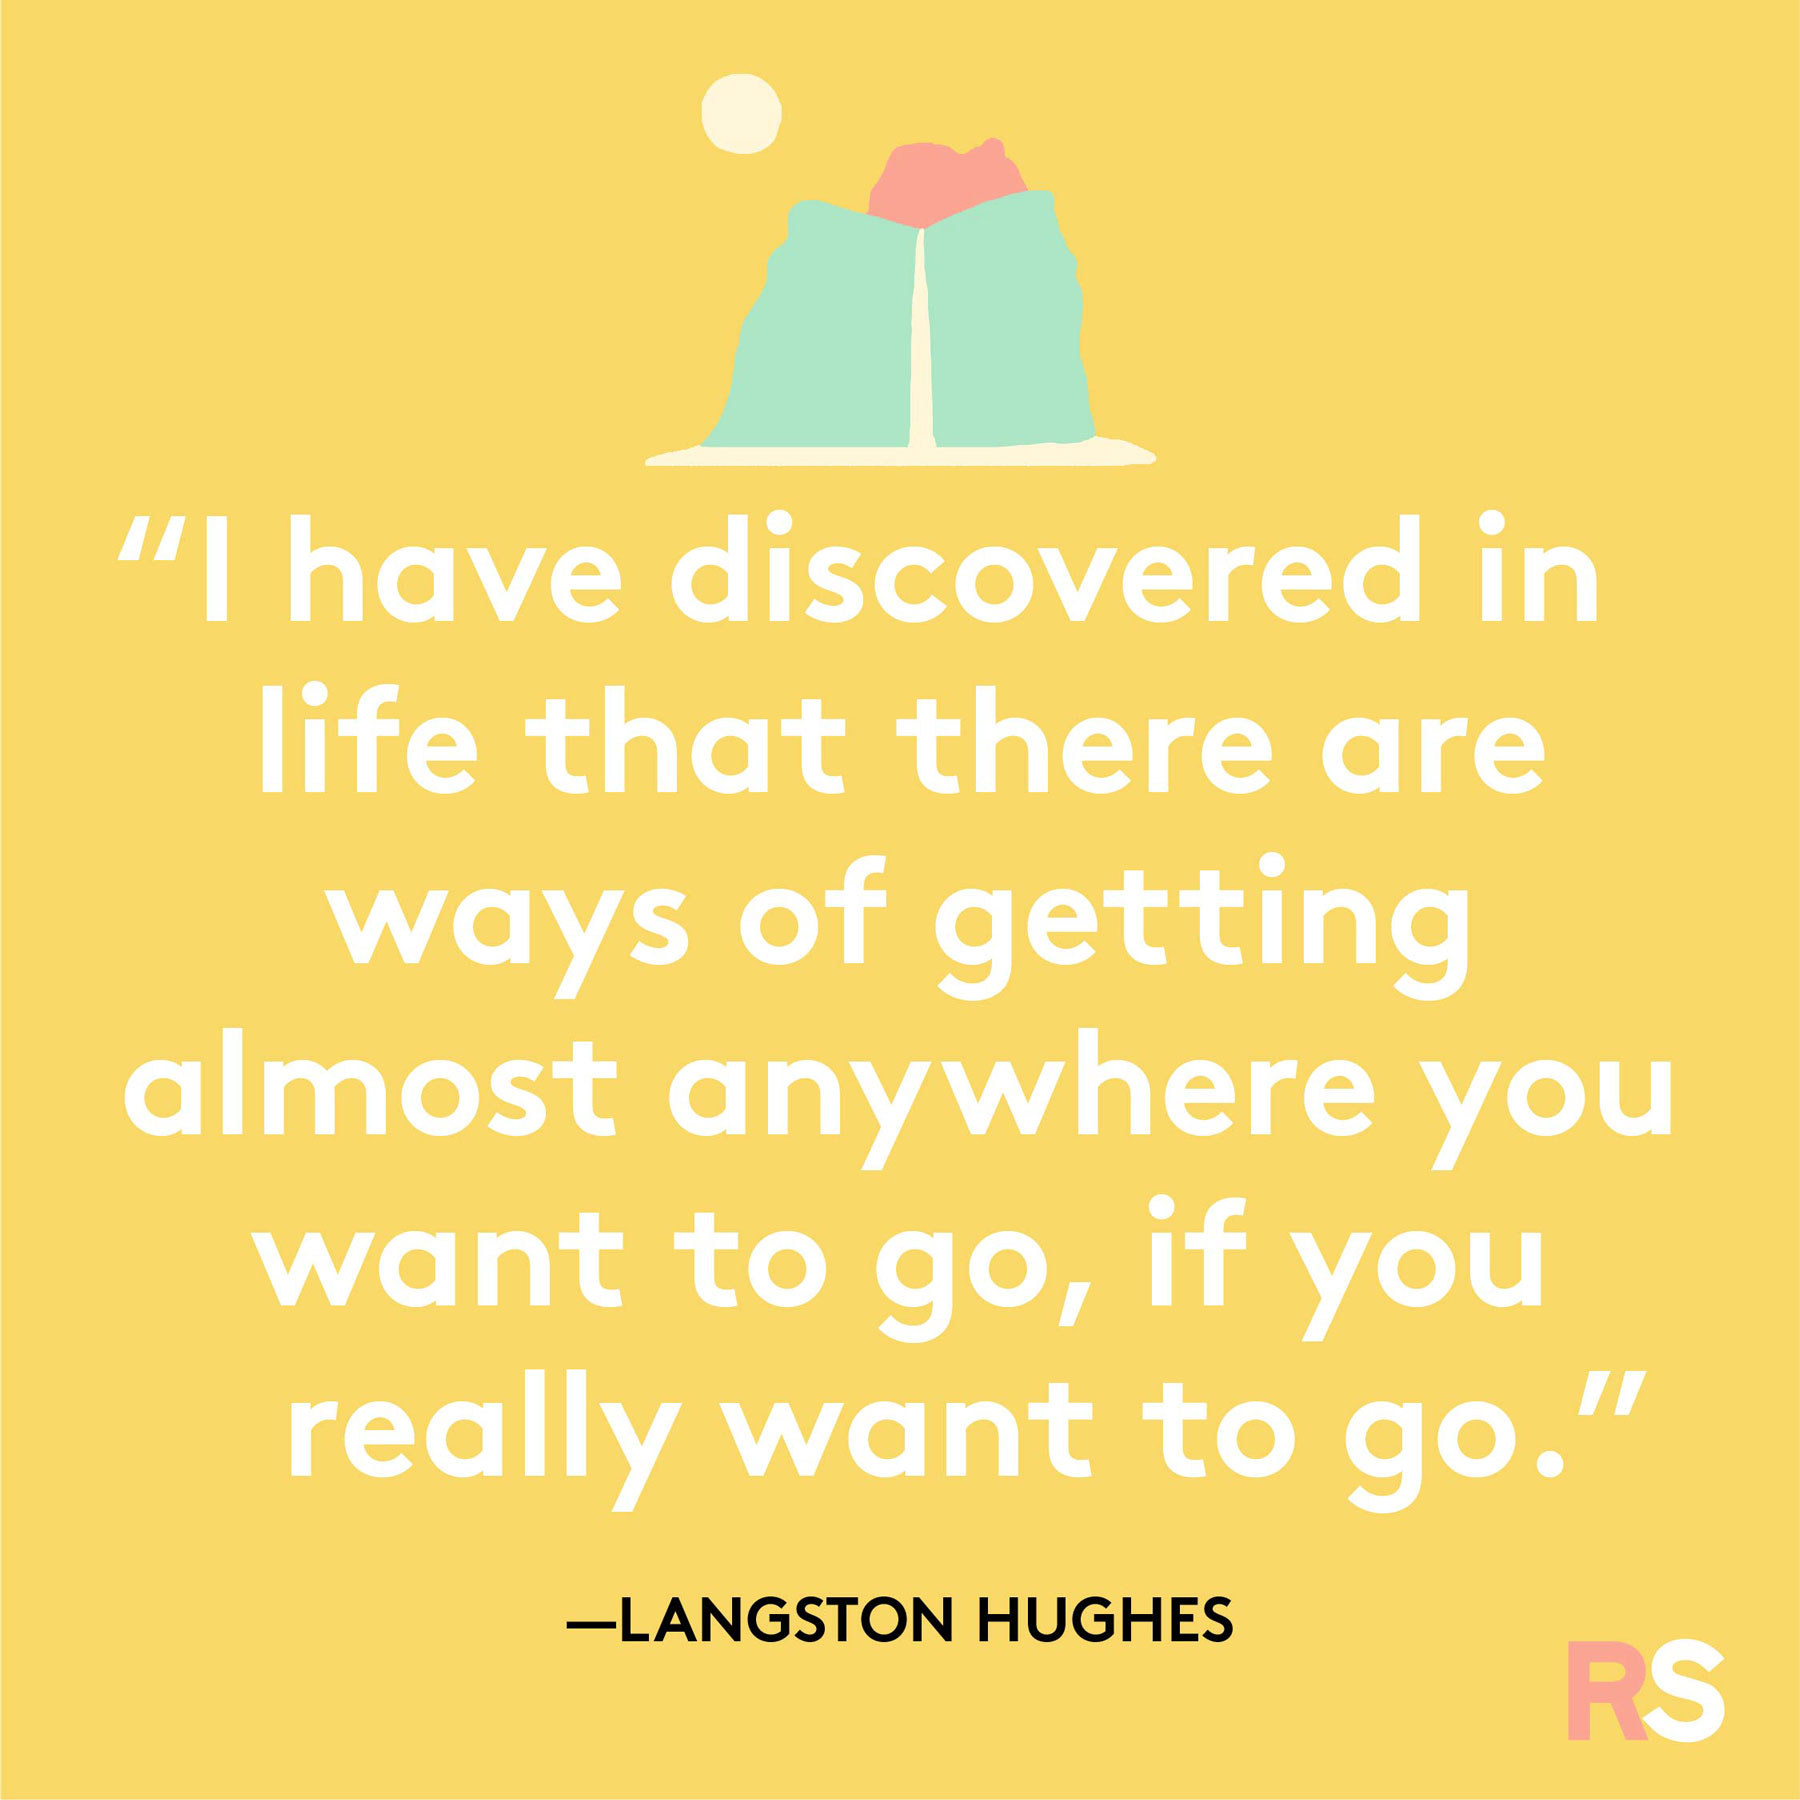 Positive motivating quotes, captions, messages – Langston Hughes quote